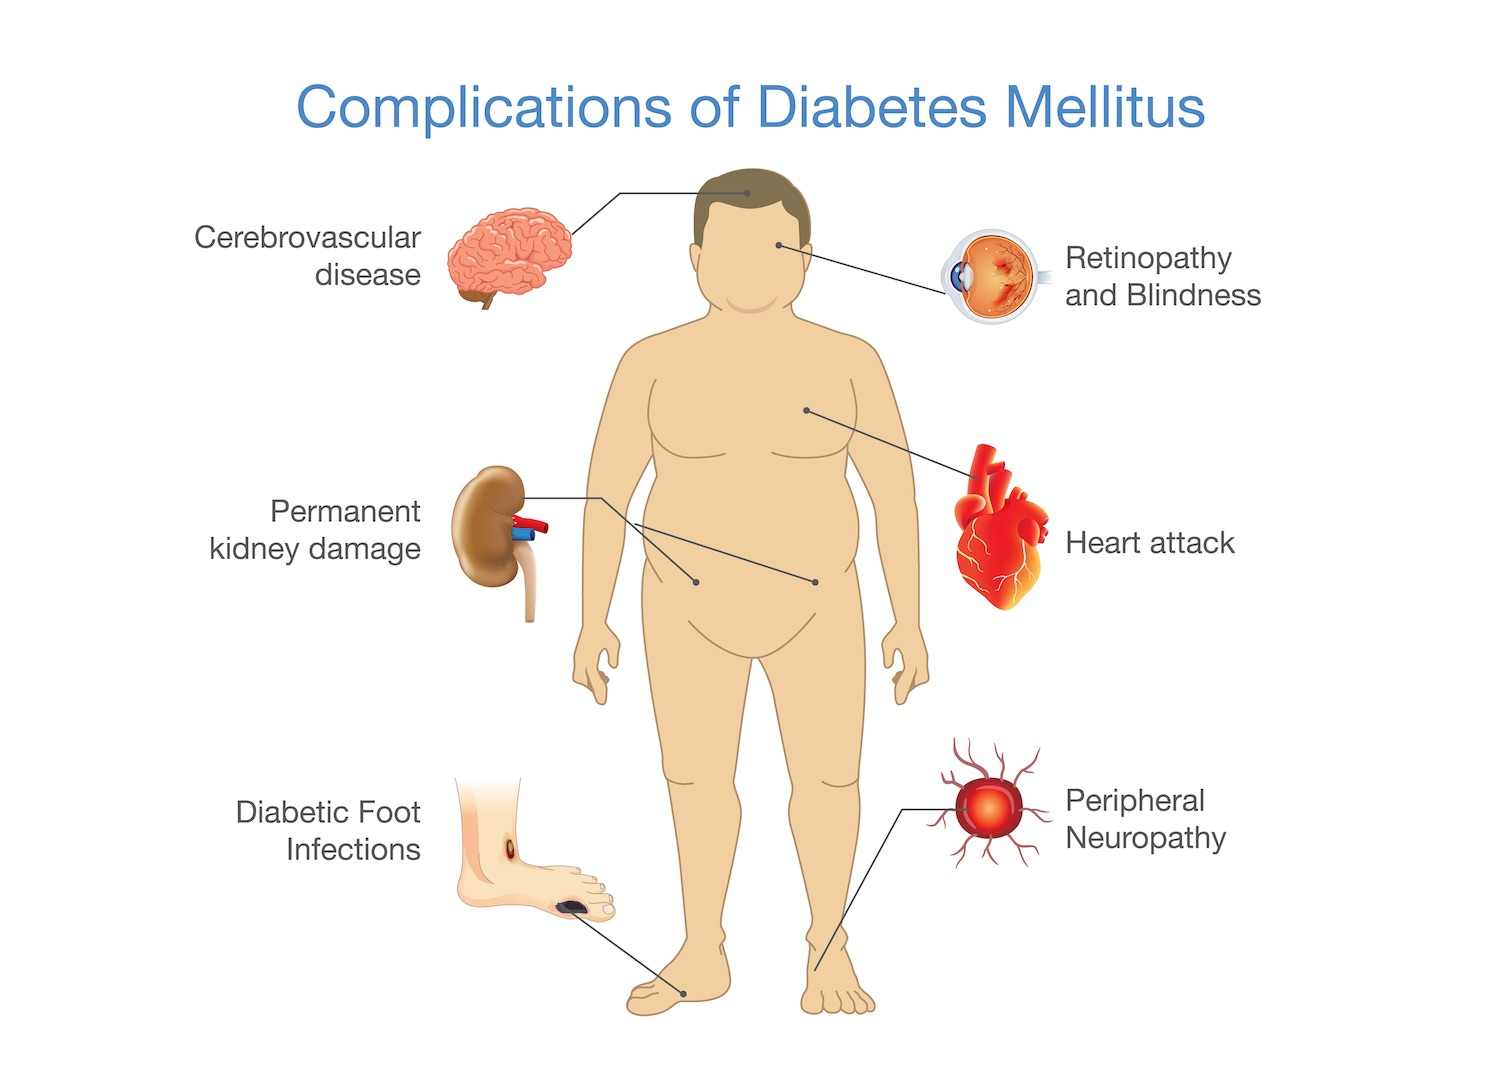 Complications of type 2 diabetes includes problems with the small and large blood vessels